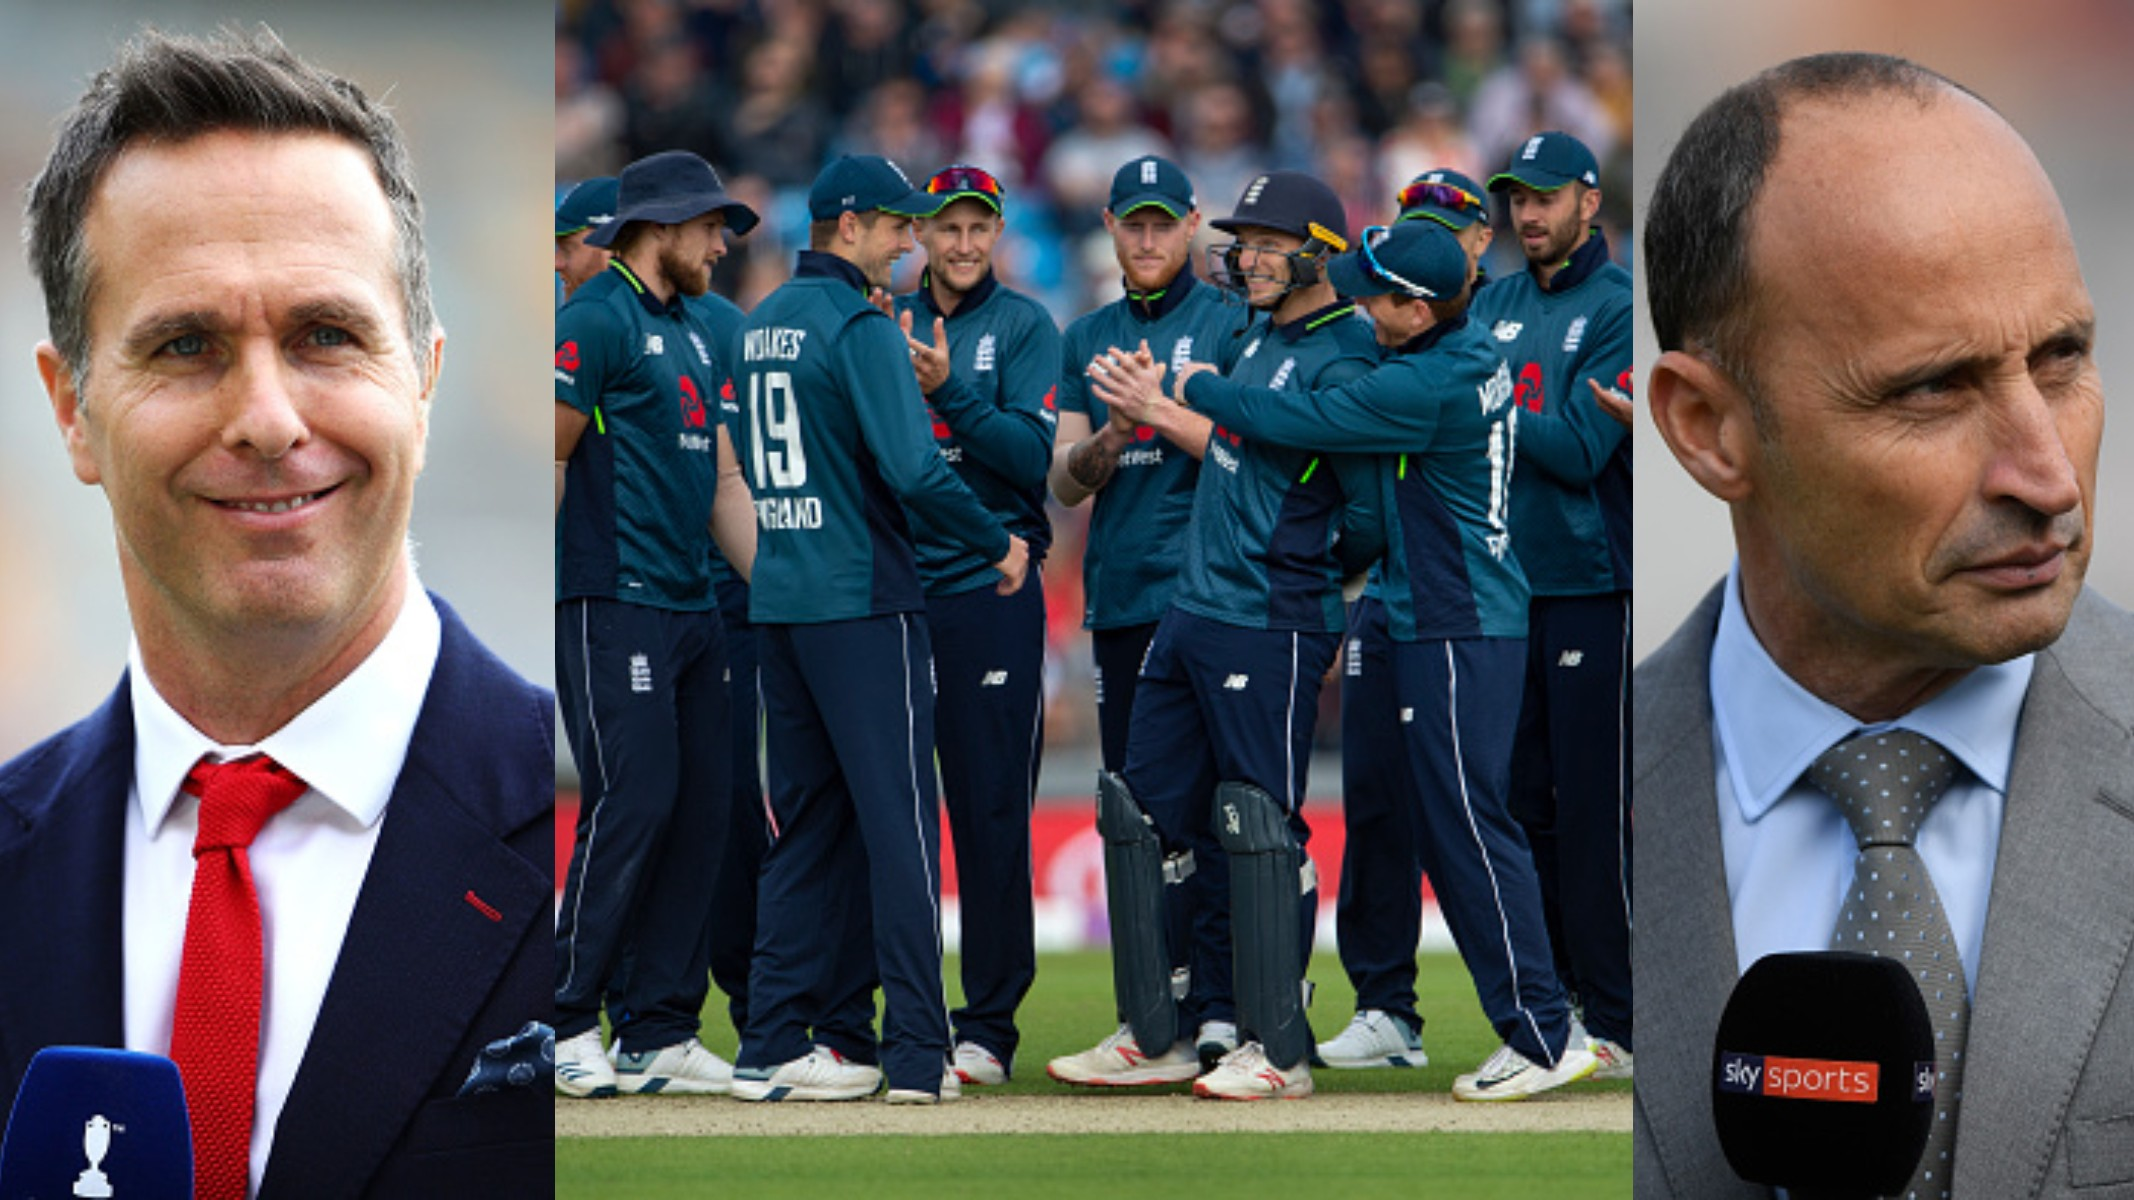 CWC 2019: Michael Vaughan and Nasser Hussain back the selected England squad to win the World Cup